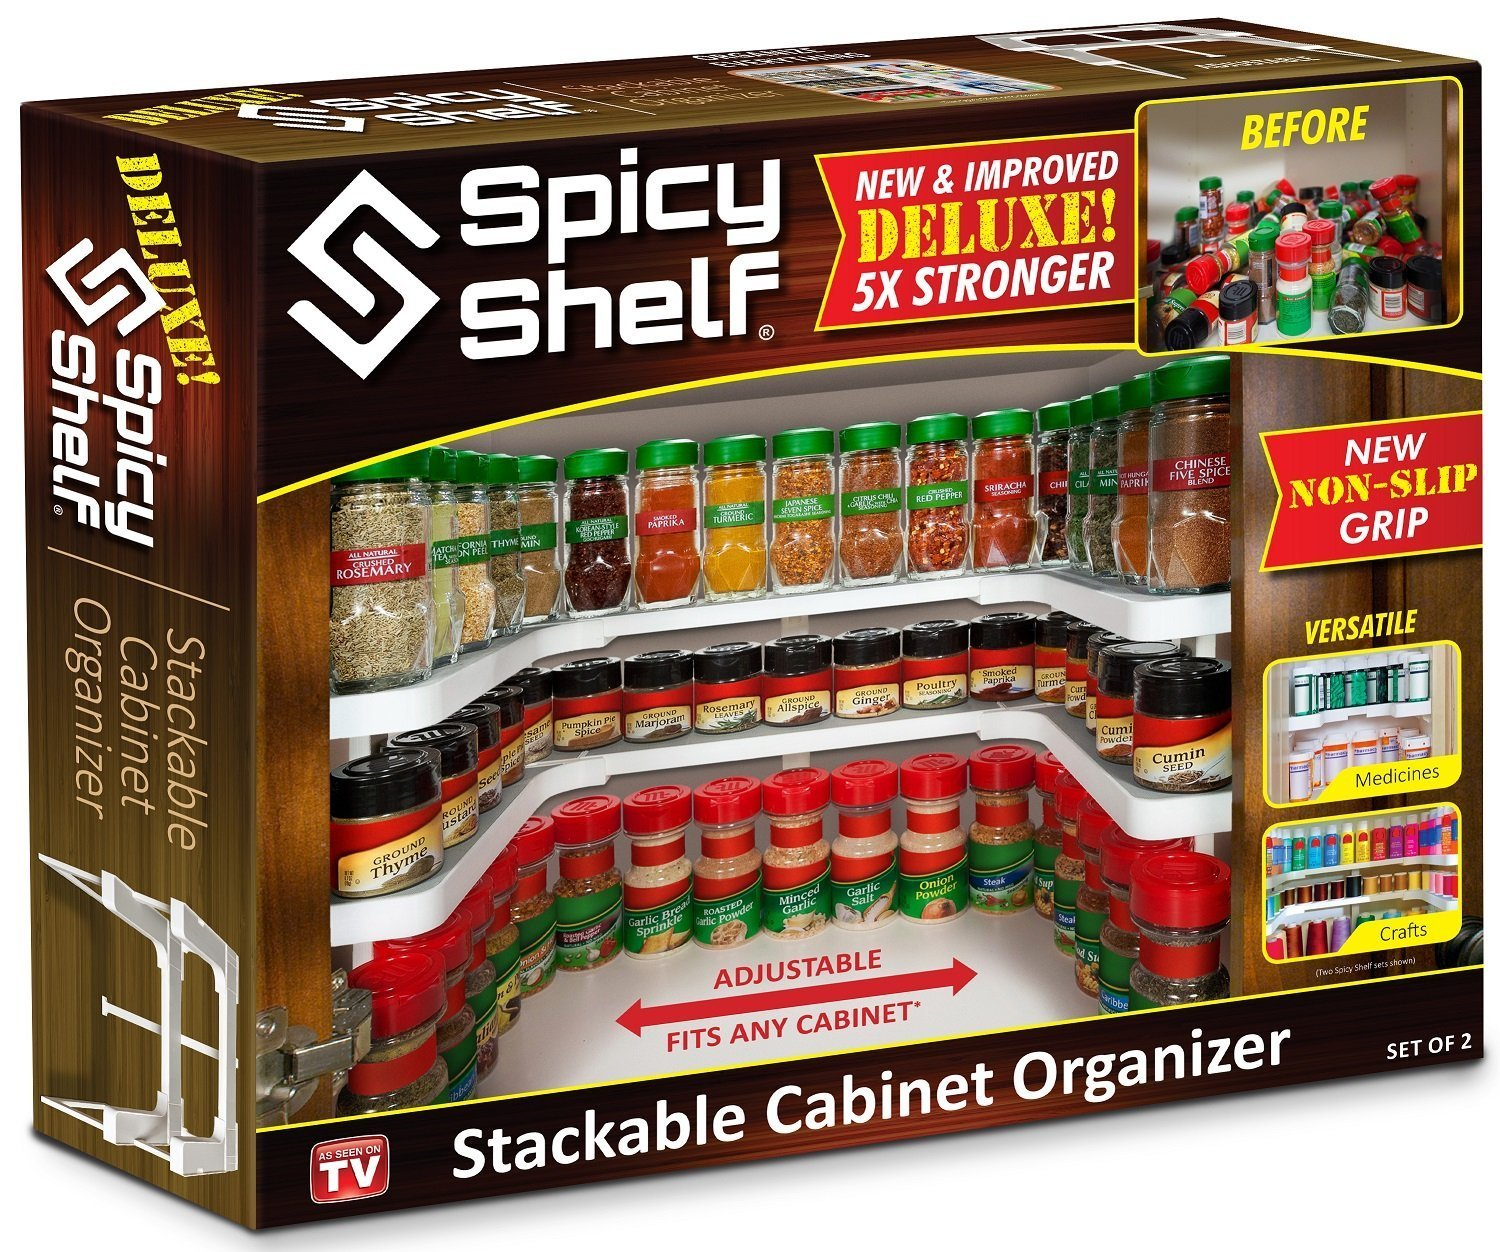 Spicy Shelf Deluxe - Spice Rack and Stackable Organizer (1 Set of 2 shelves) - As seen on TV